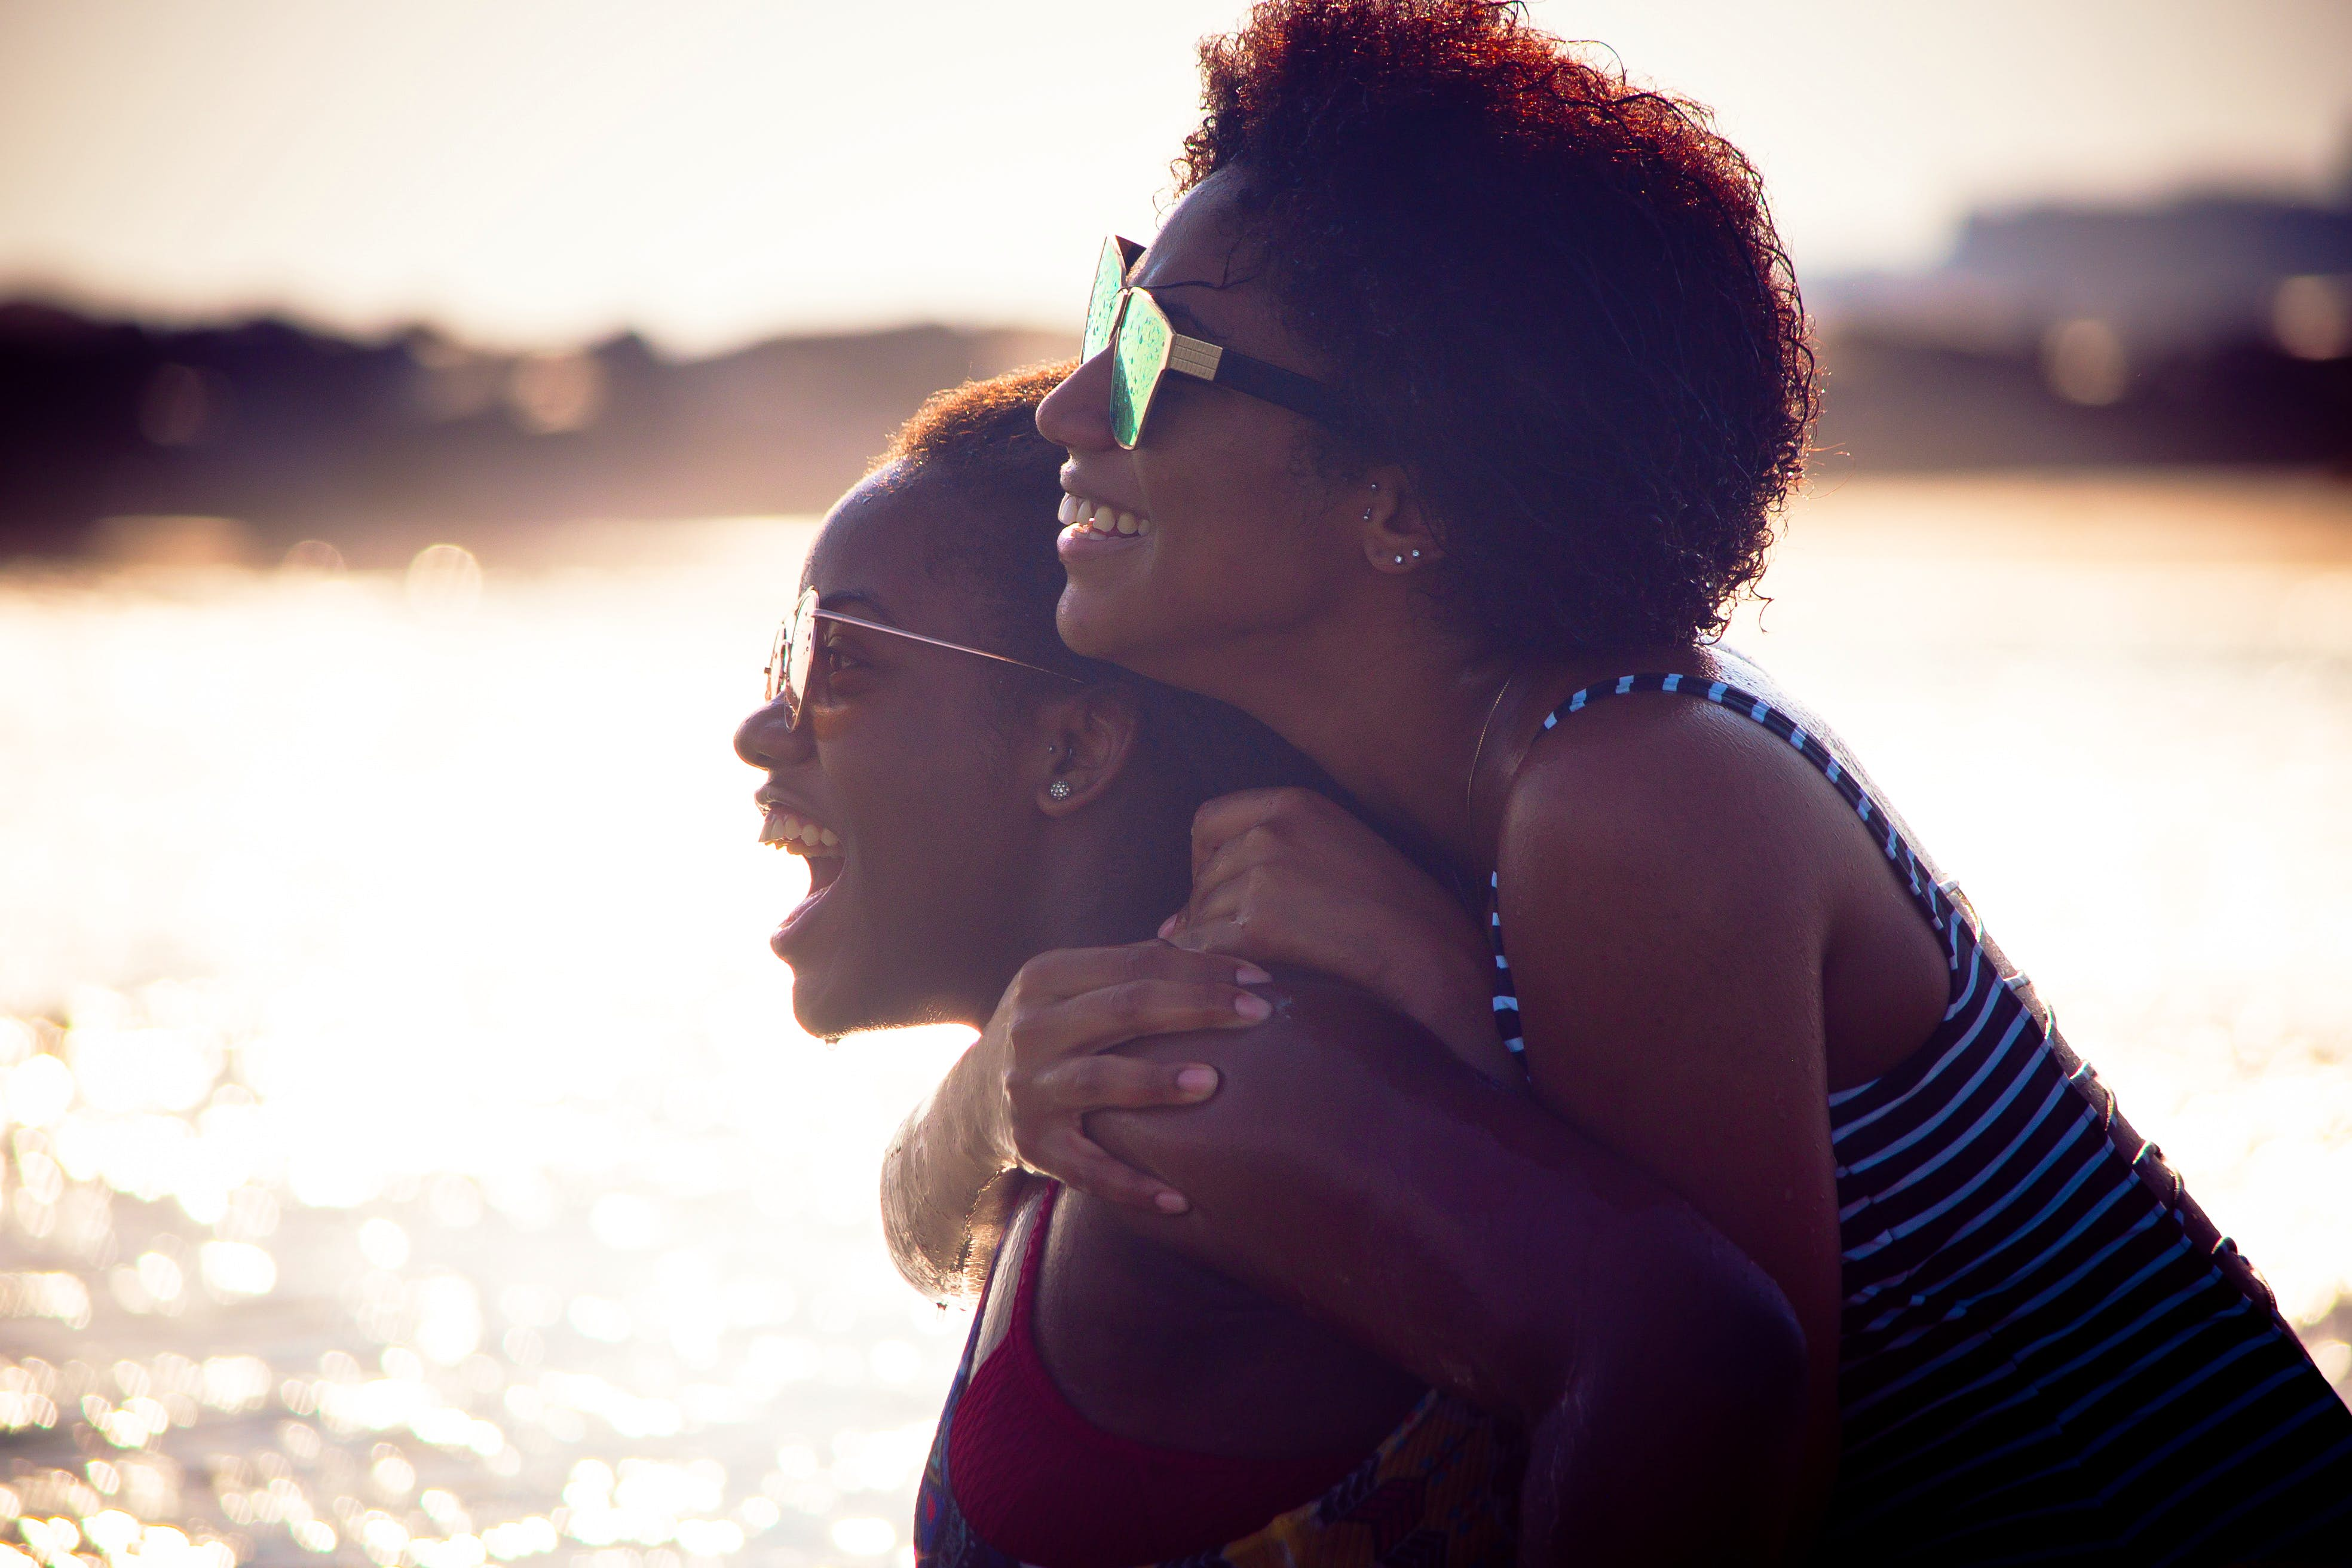 Two black women hug and smile at the beach together.